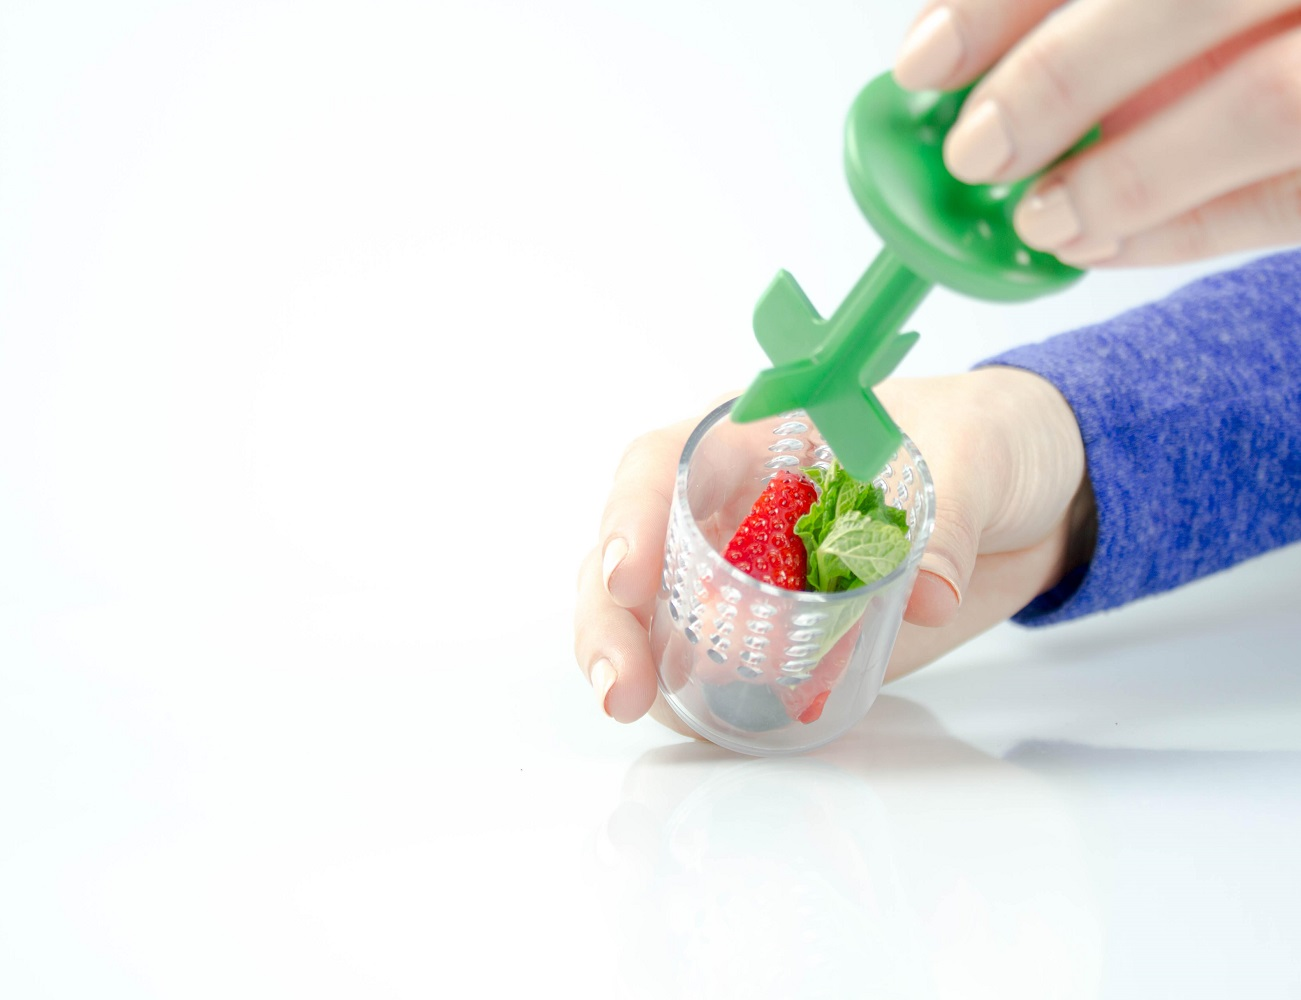 Splash Infuser: Rapidly Infuse Your Drinks – Anywhere, Anytime